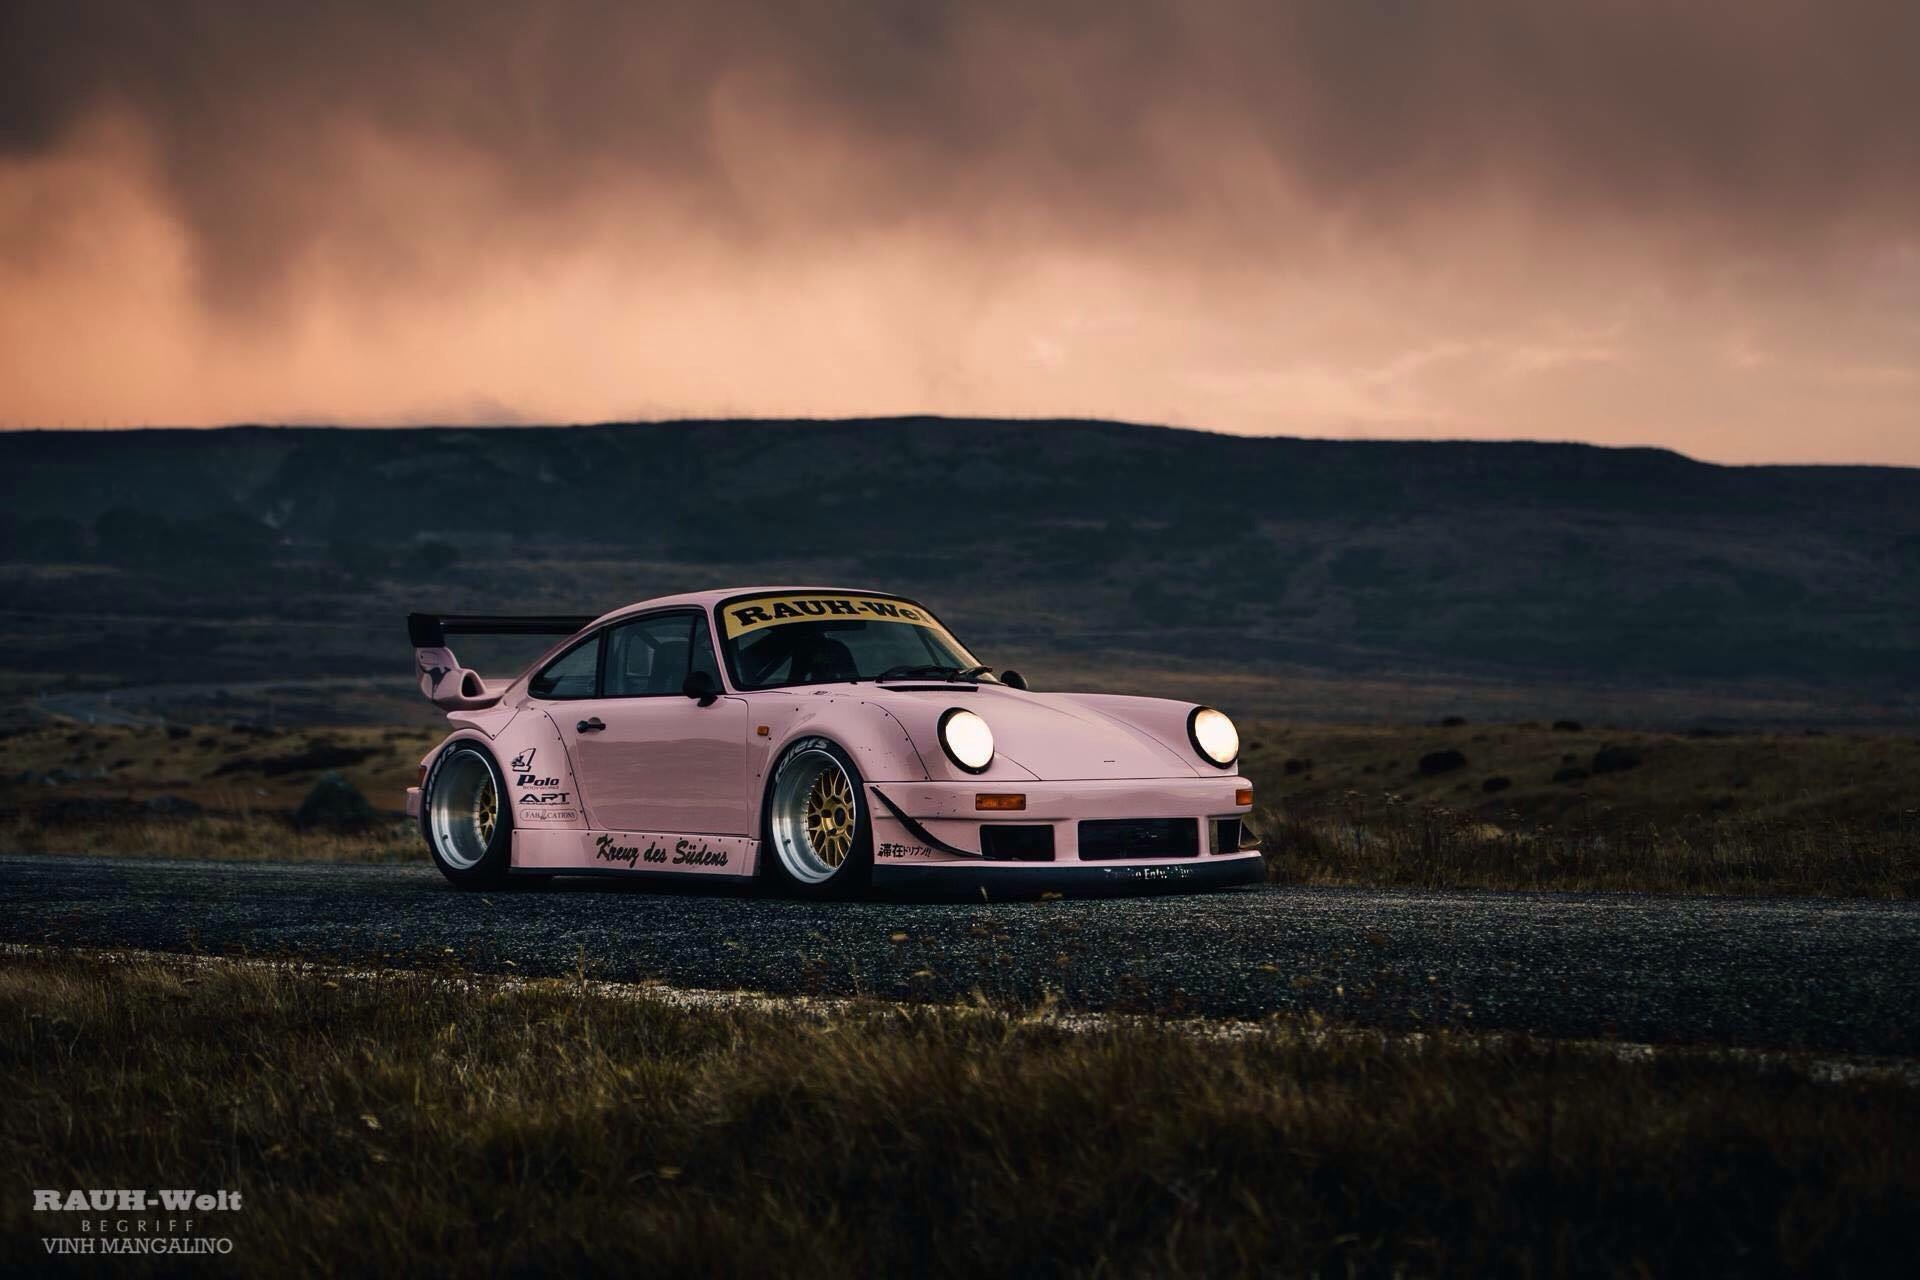 Even In Pink Looks Stunning Rwb